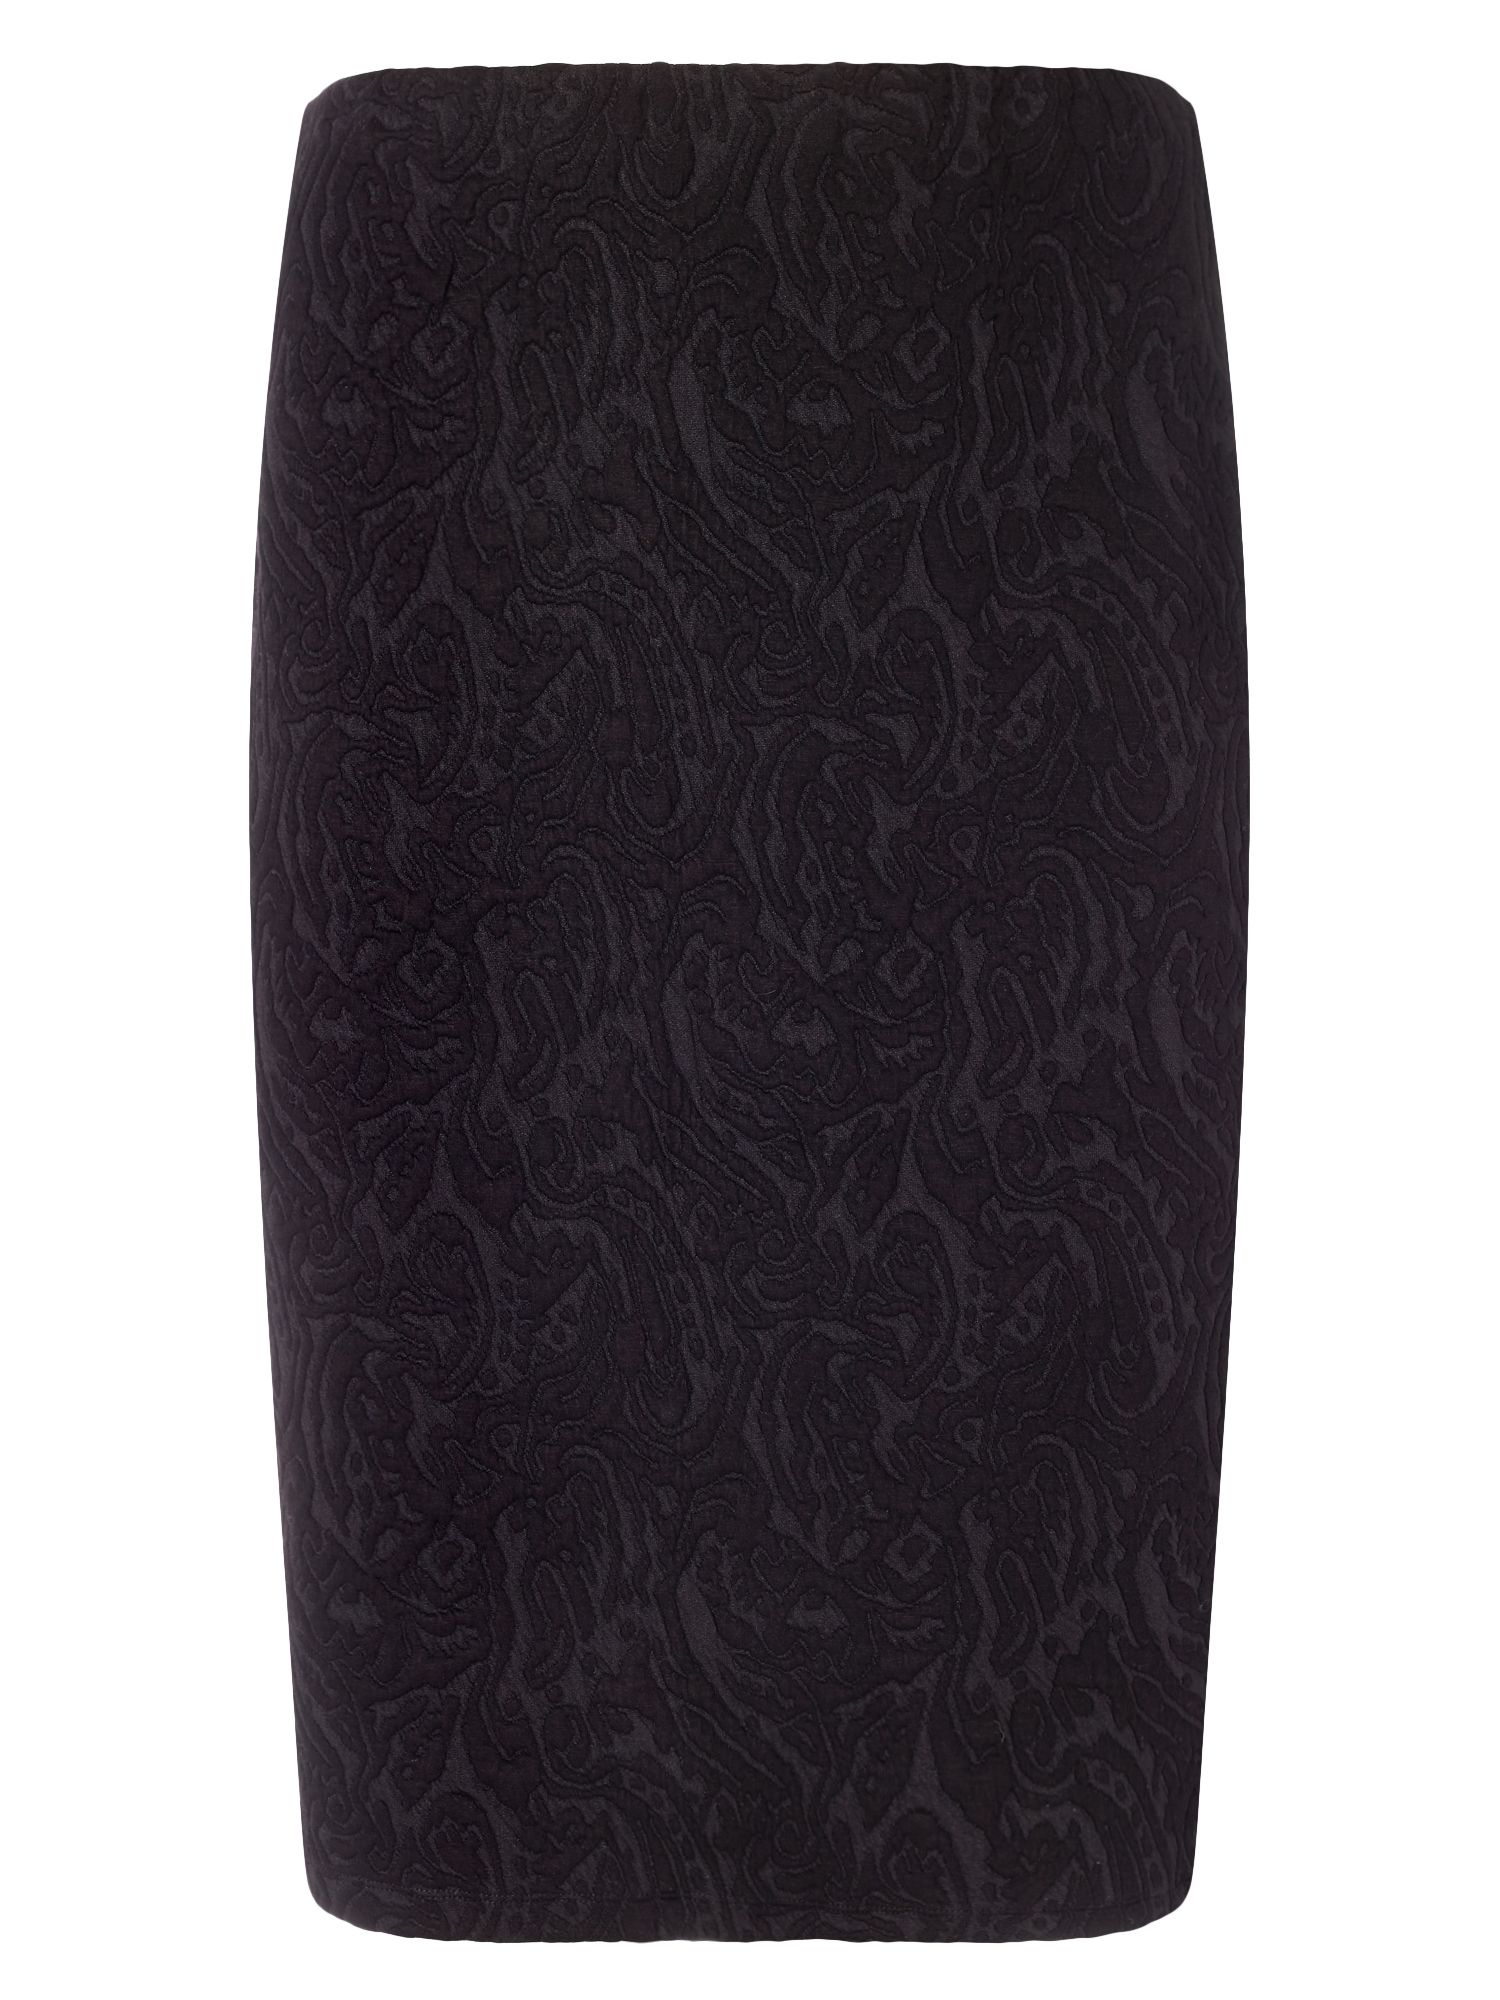 Studio 8 Plus Size Mona textured skirt, Black